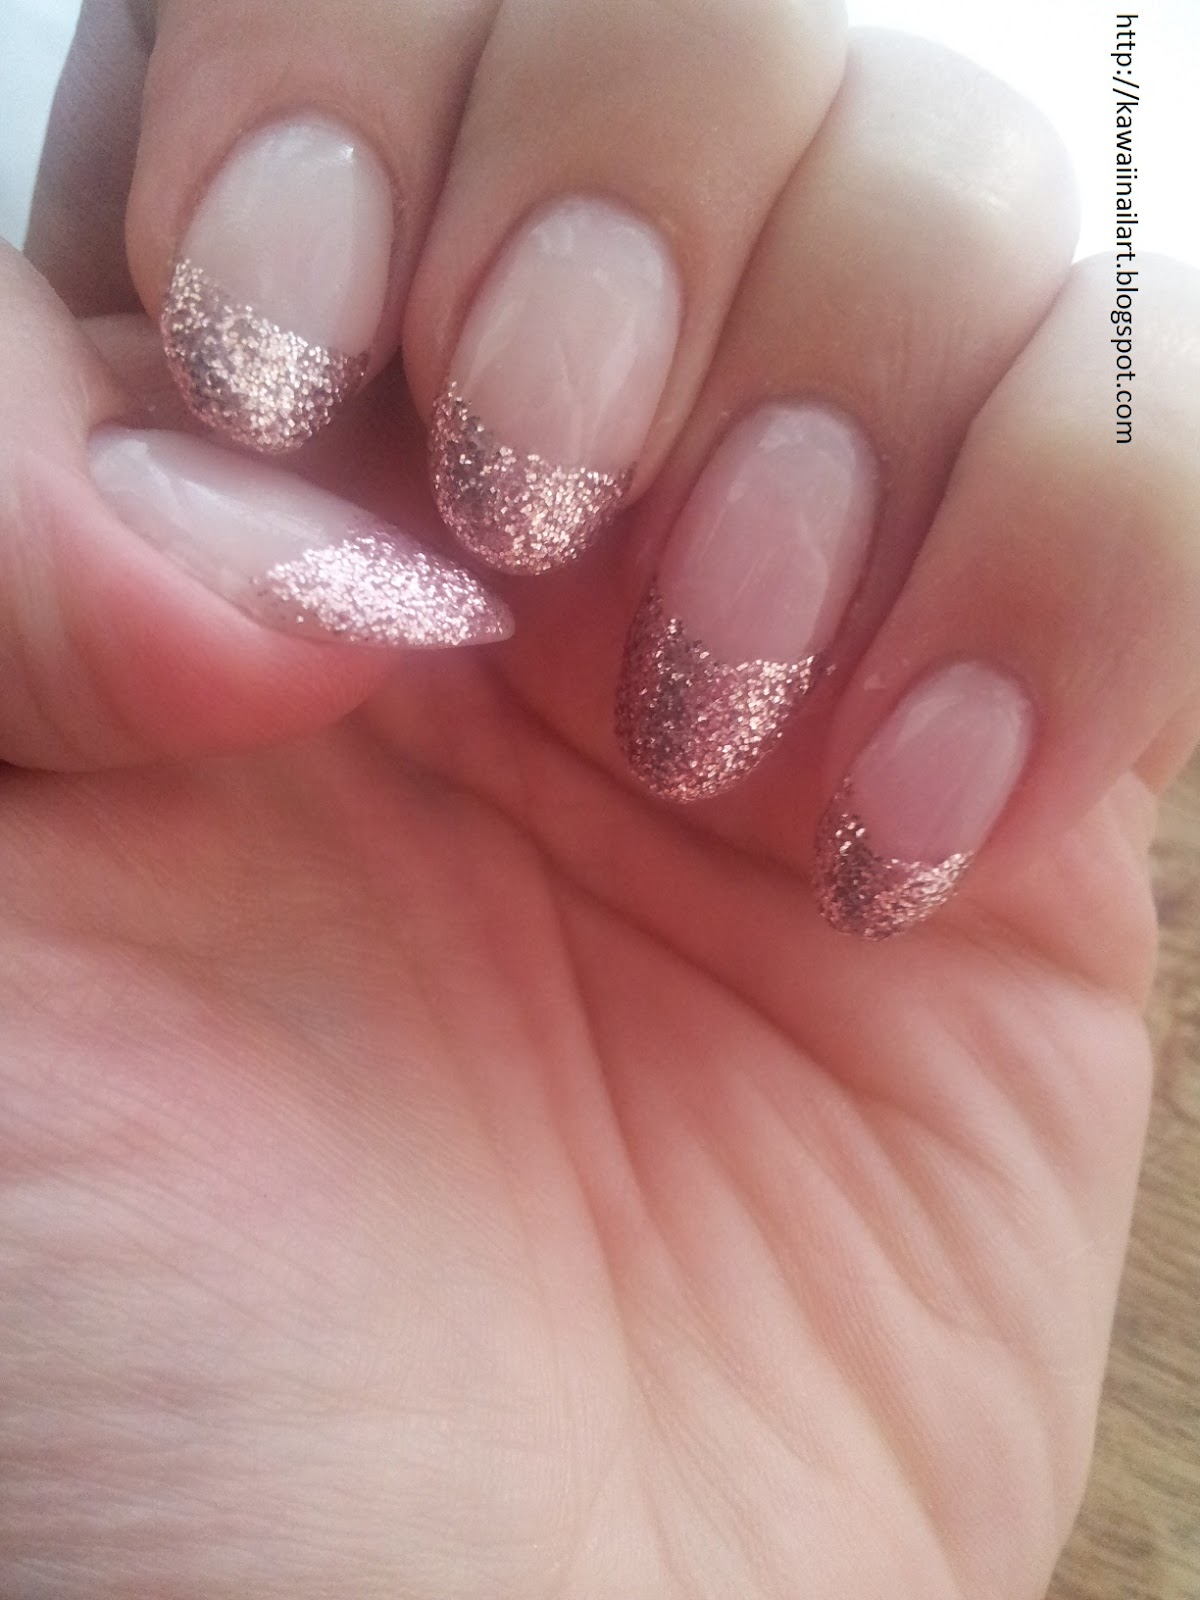 Kawaii Nail Art: French Manicure with a twist